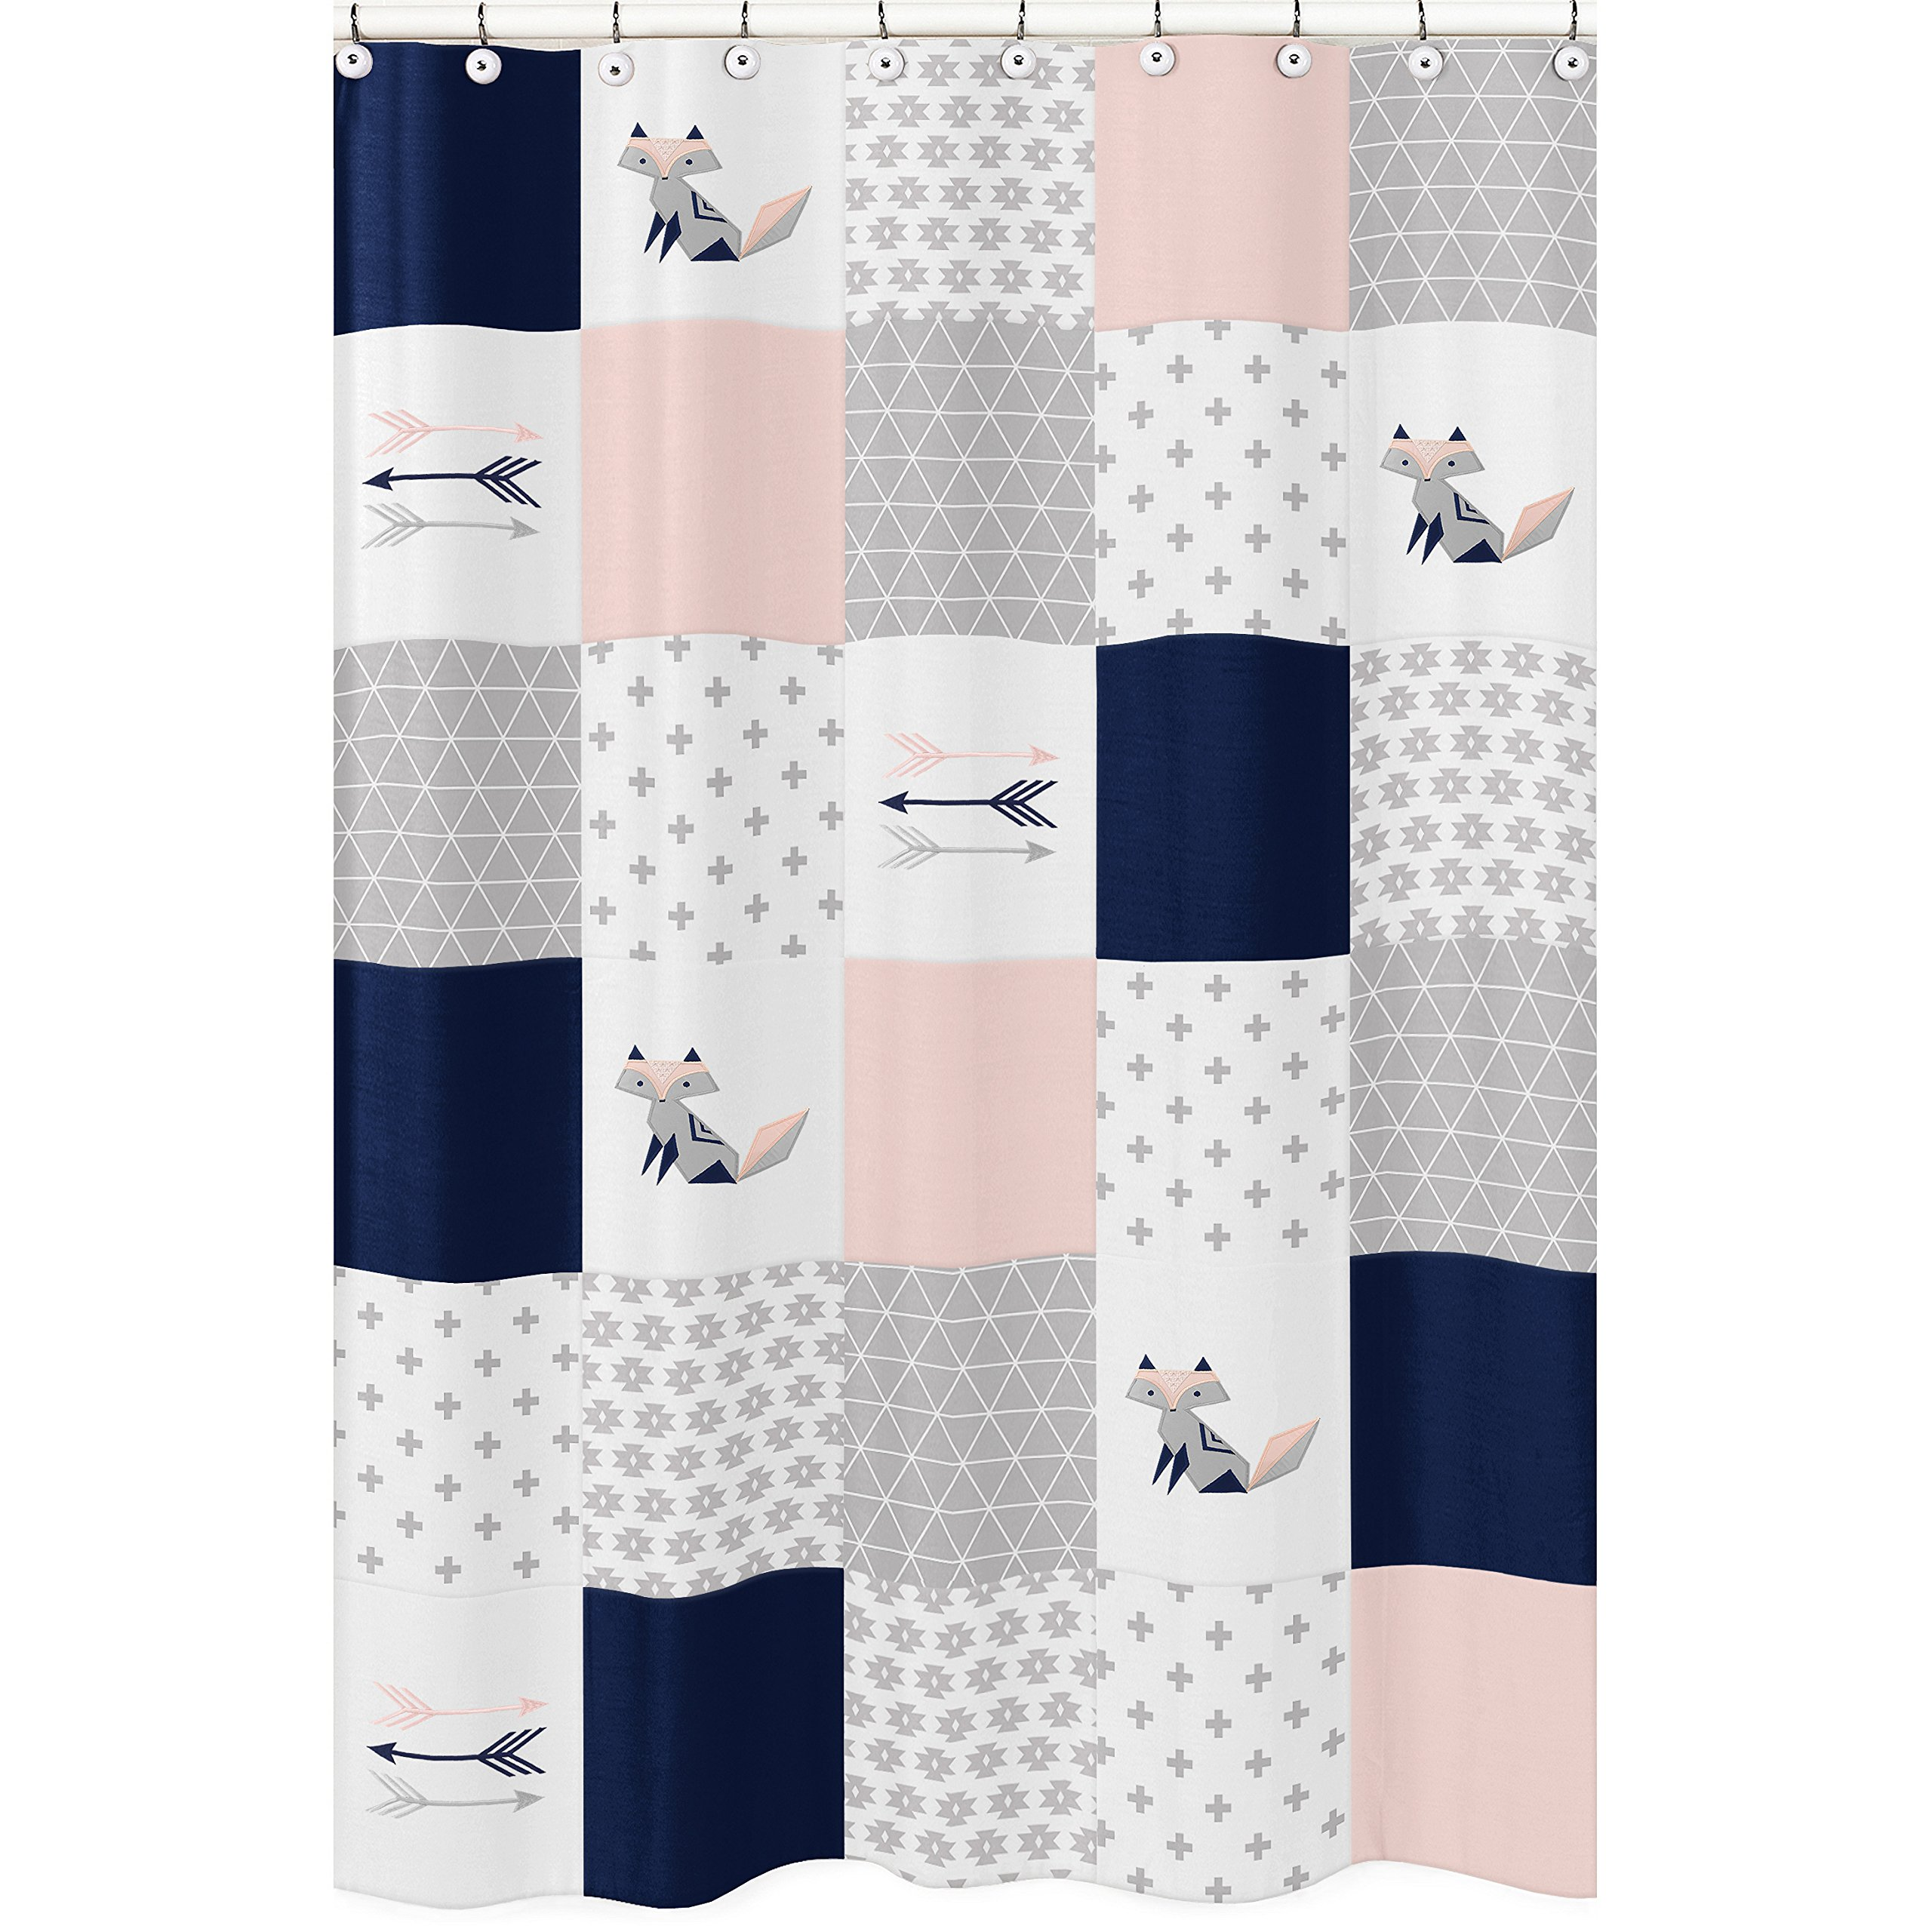 Sweet Jojo Designs Navy Blue, Pink, and Grey Patchwork Bathroom Fabric Bath Shower Curtain for Woodland Fox and Arrow Collection